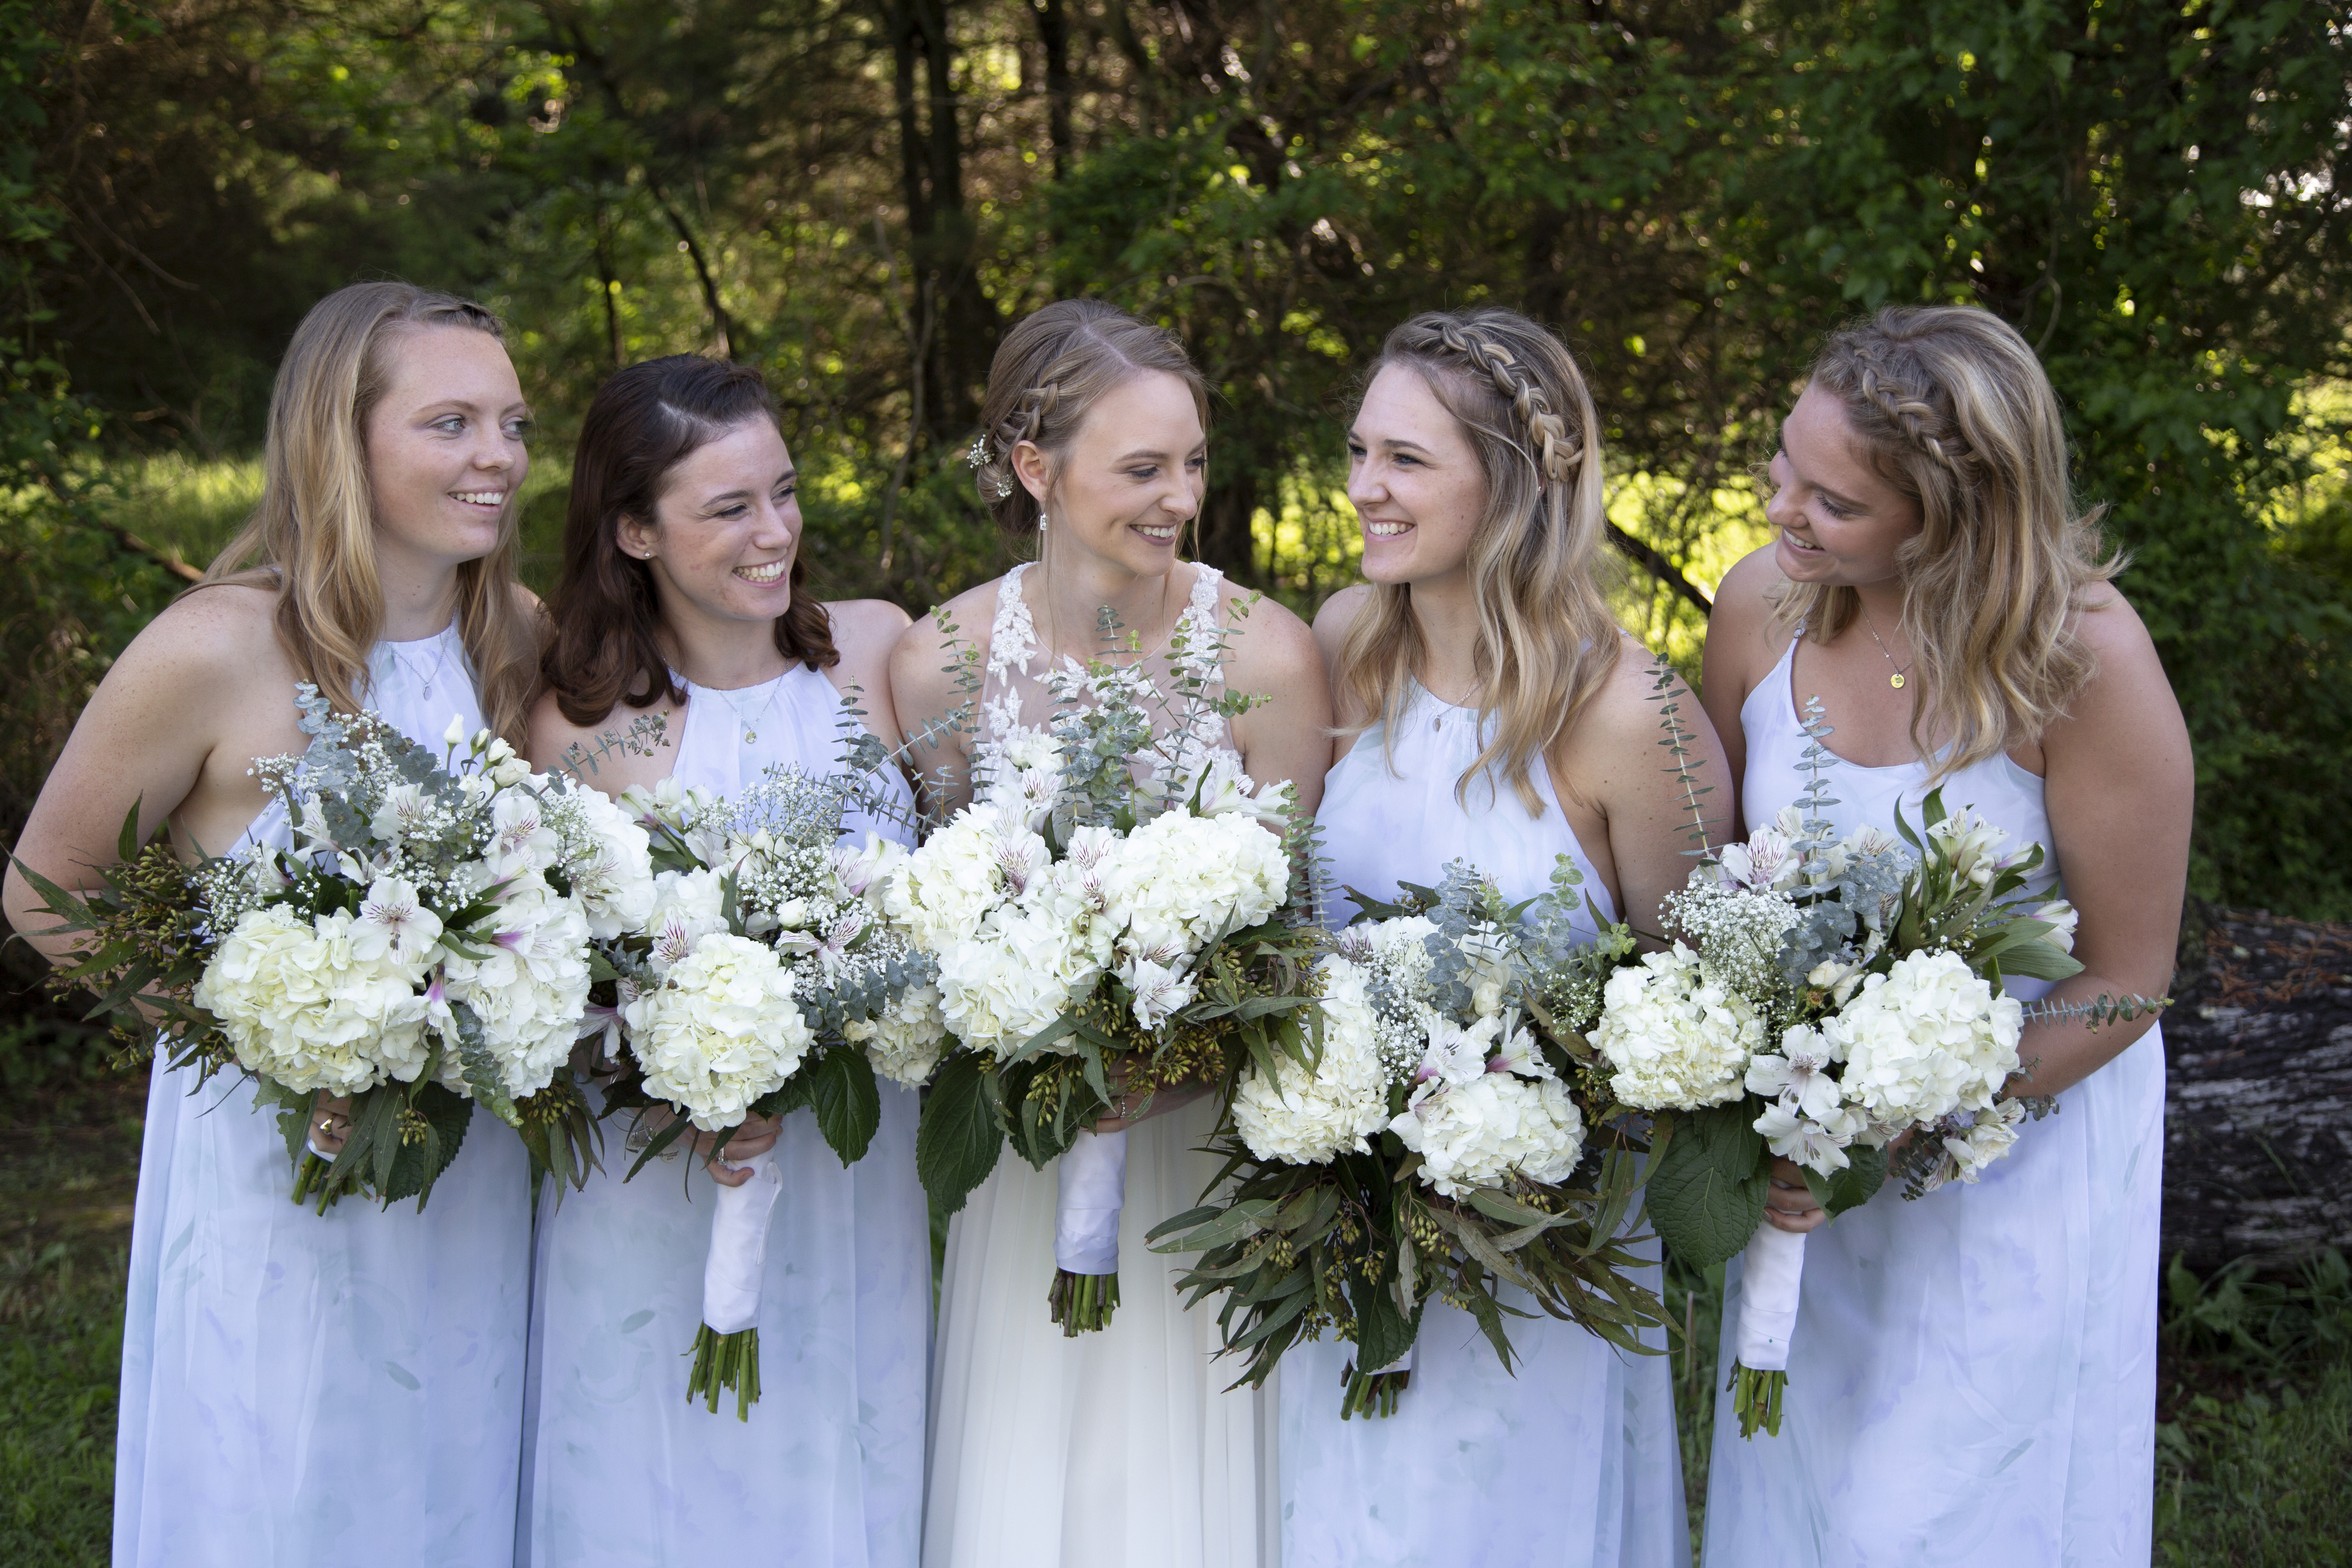 bride and bridesmaids smiling and holding bouquets